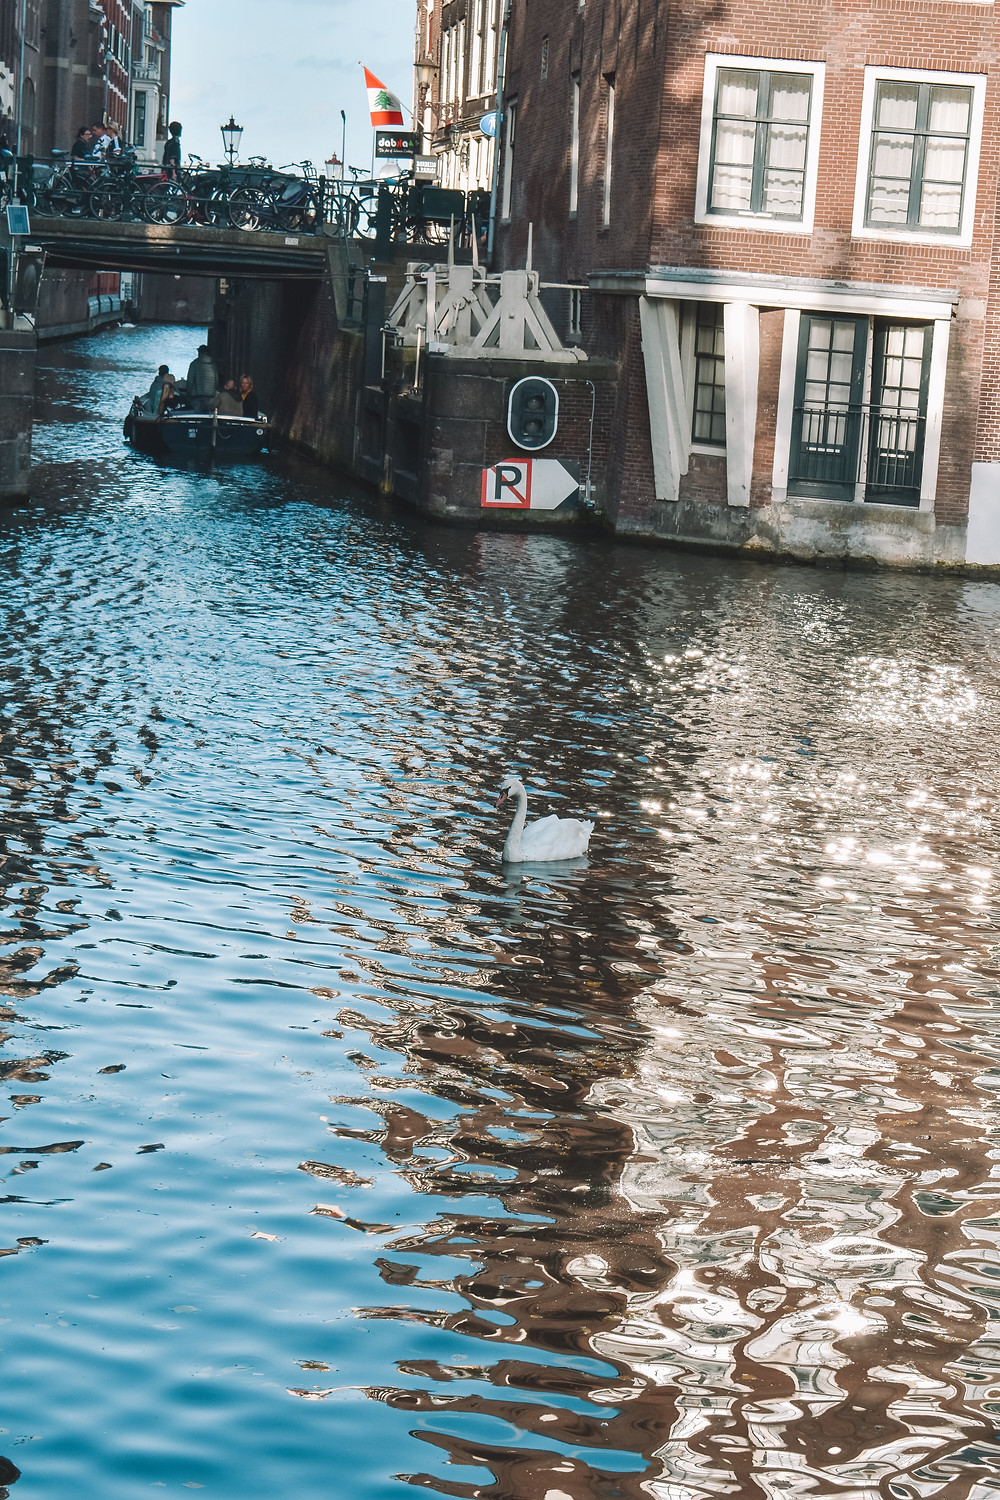 a swan in the canal in Amsterdam